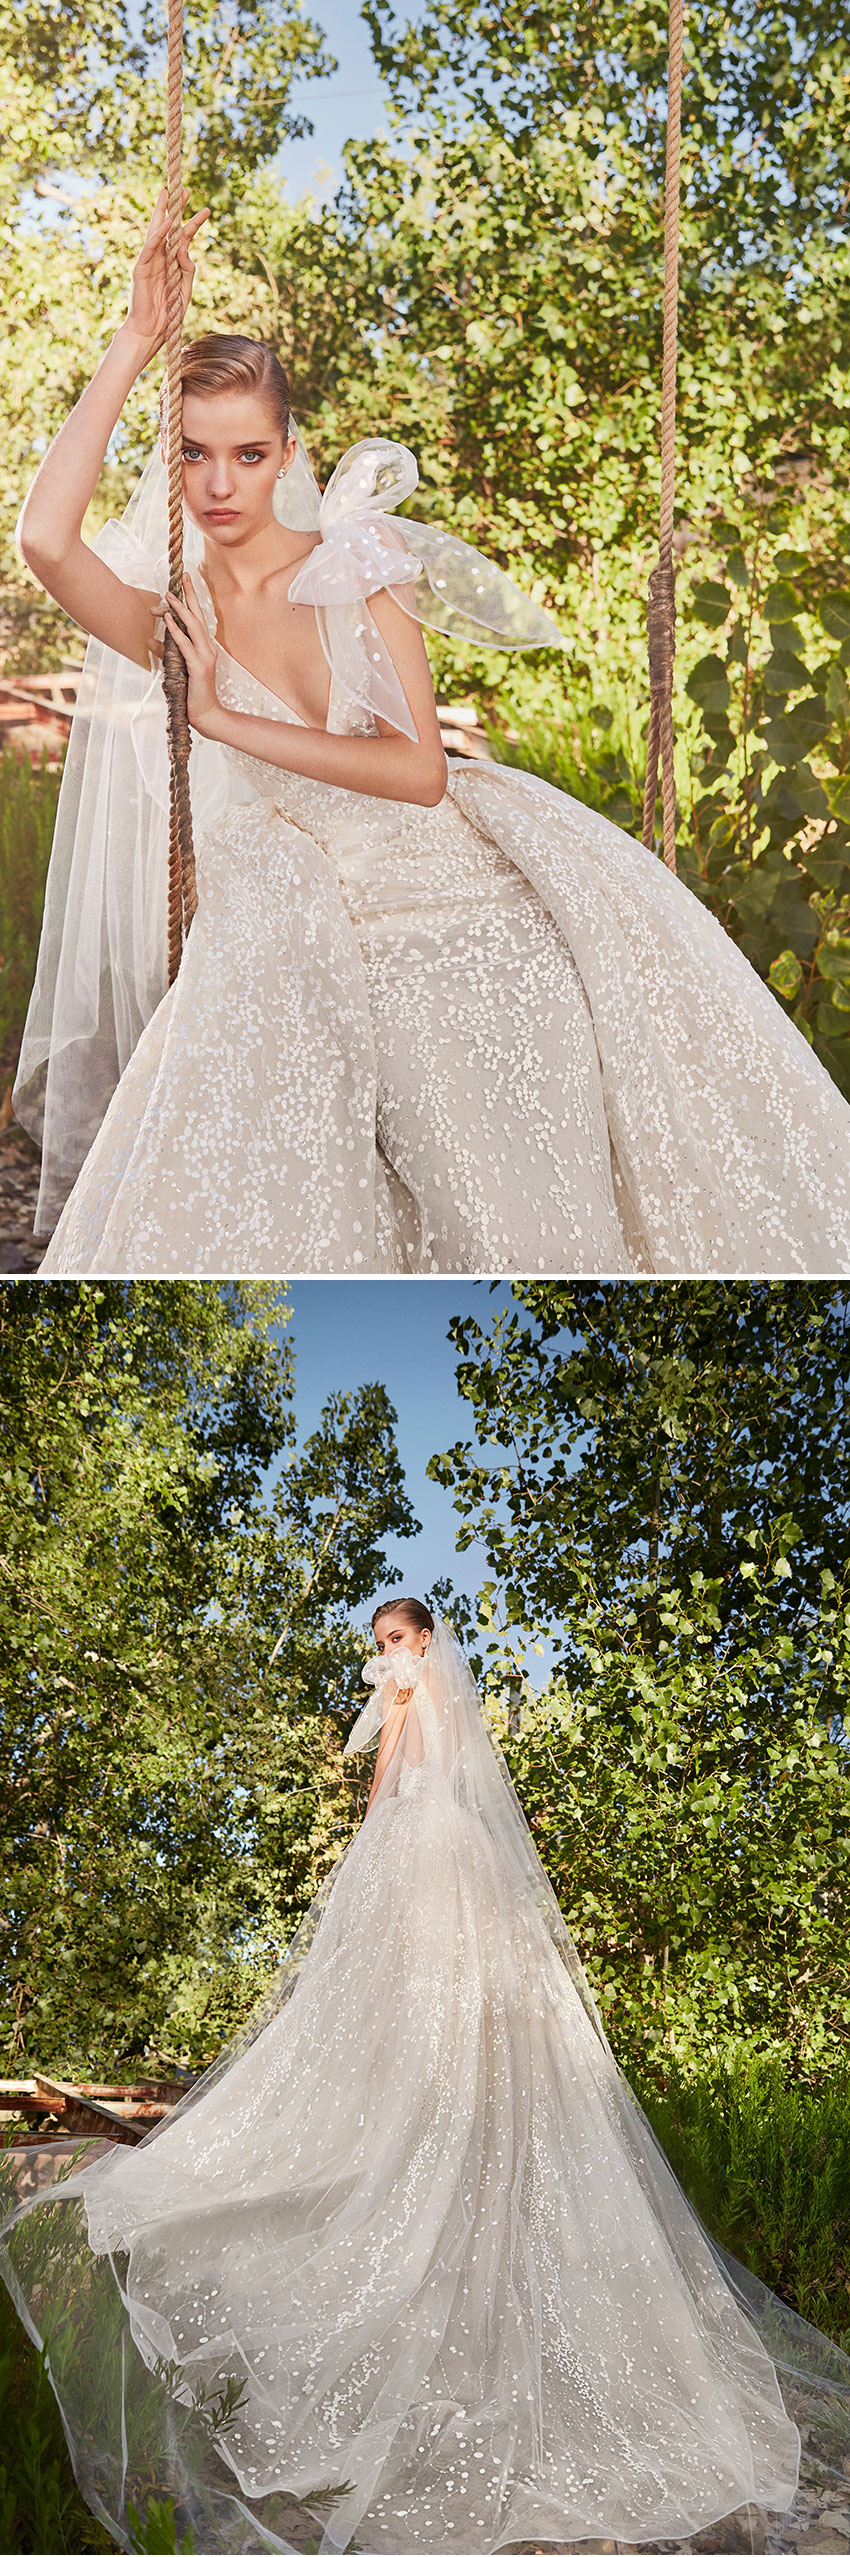 Elie Saab's Spring 2021 Bridal collection reinforces the romantic femininity quintessential to the Couture house featured in Perfect Wedding Magazine